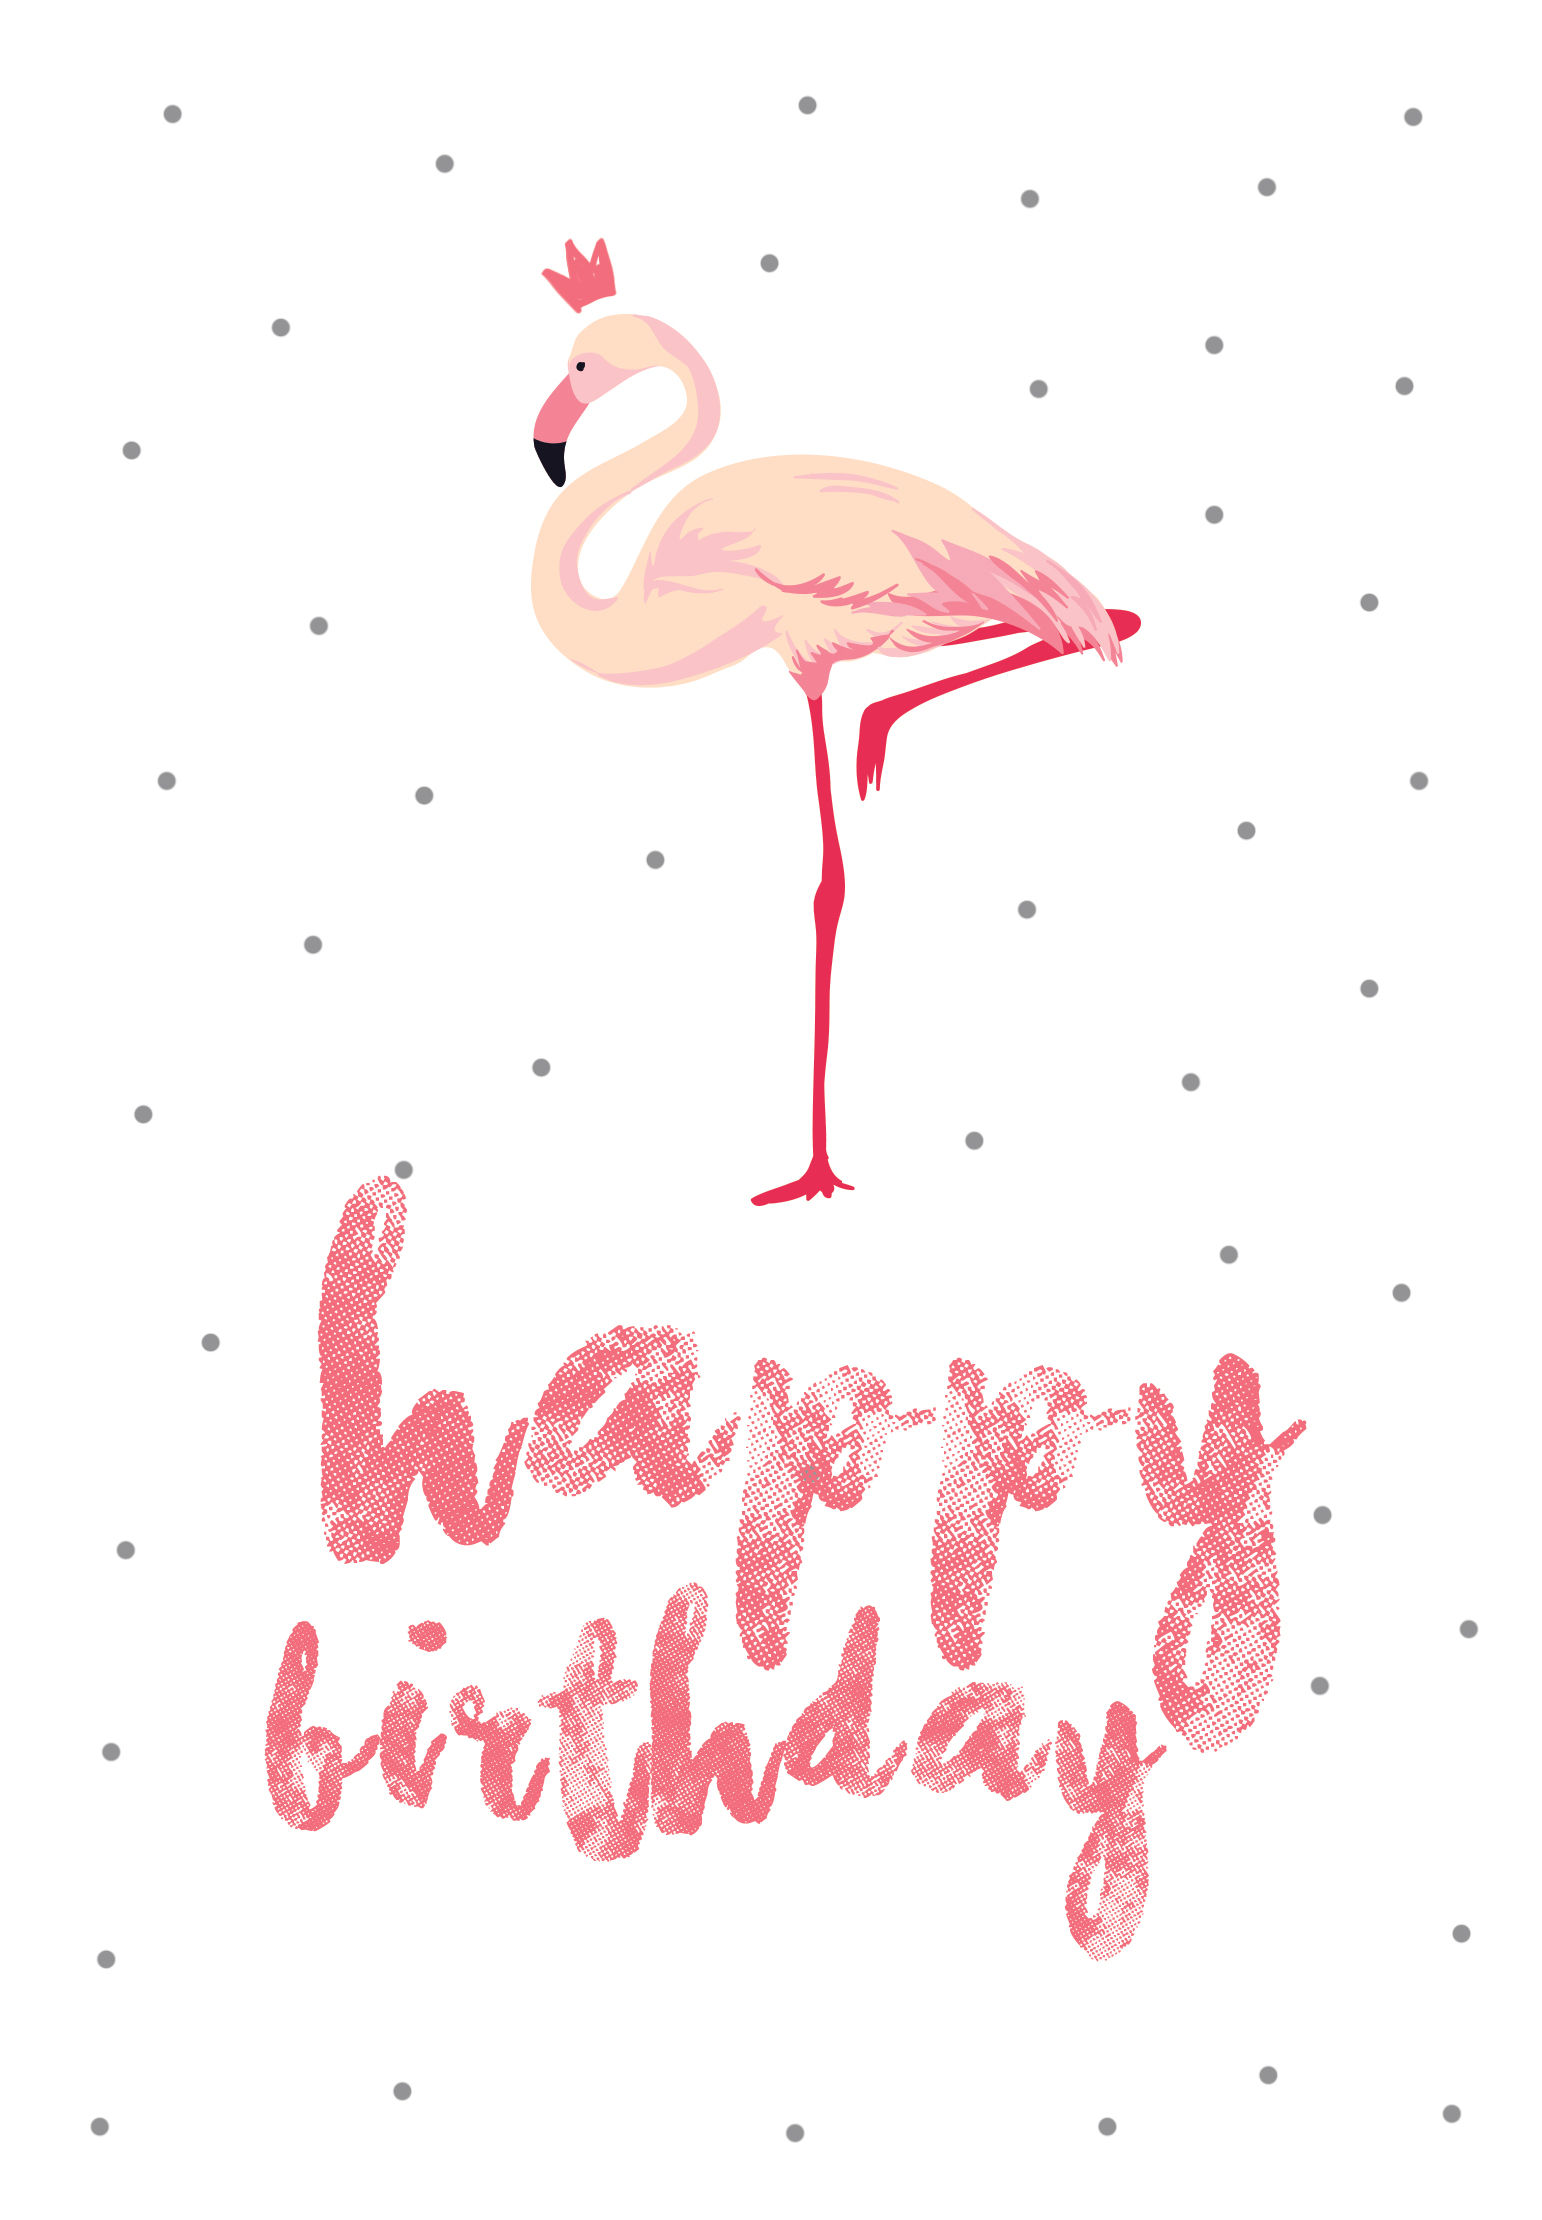 Flamingo Birthday - Free Printable Birthday Card | Greetings Island - Free Printable Birthday Cards For Wife